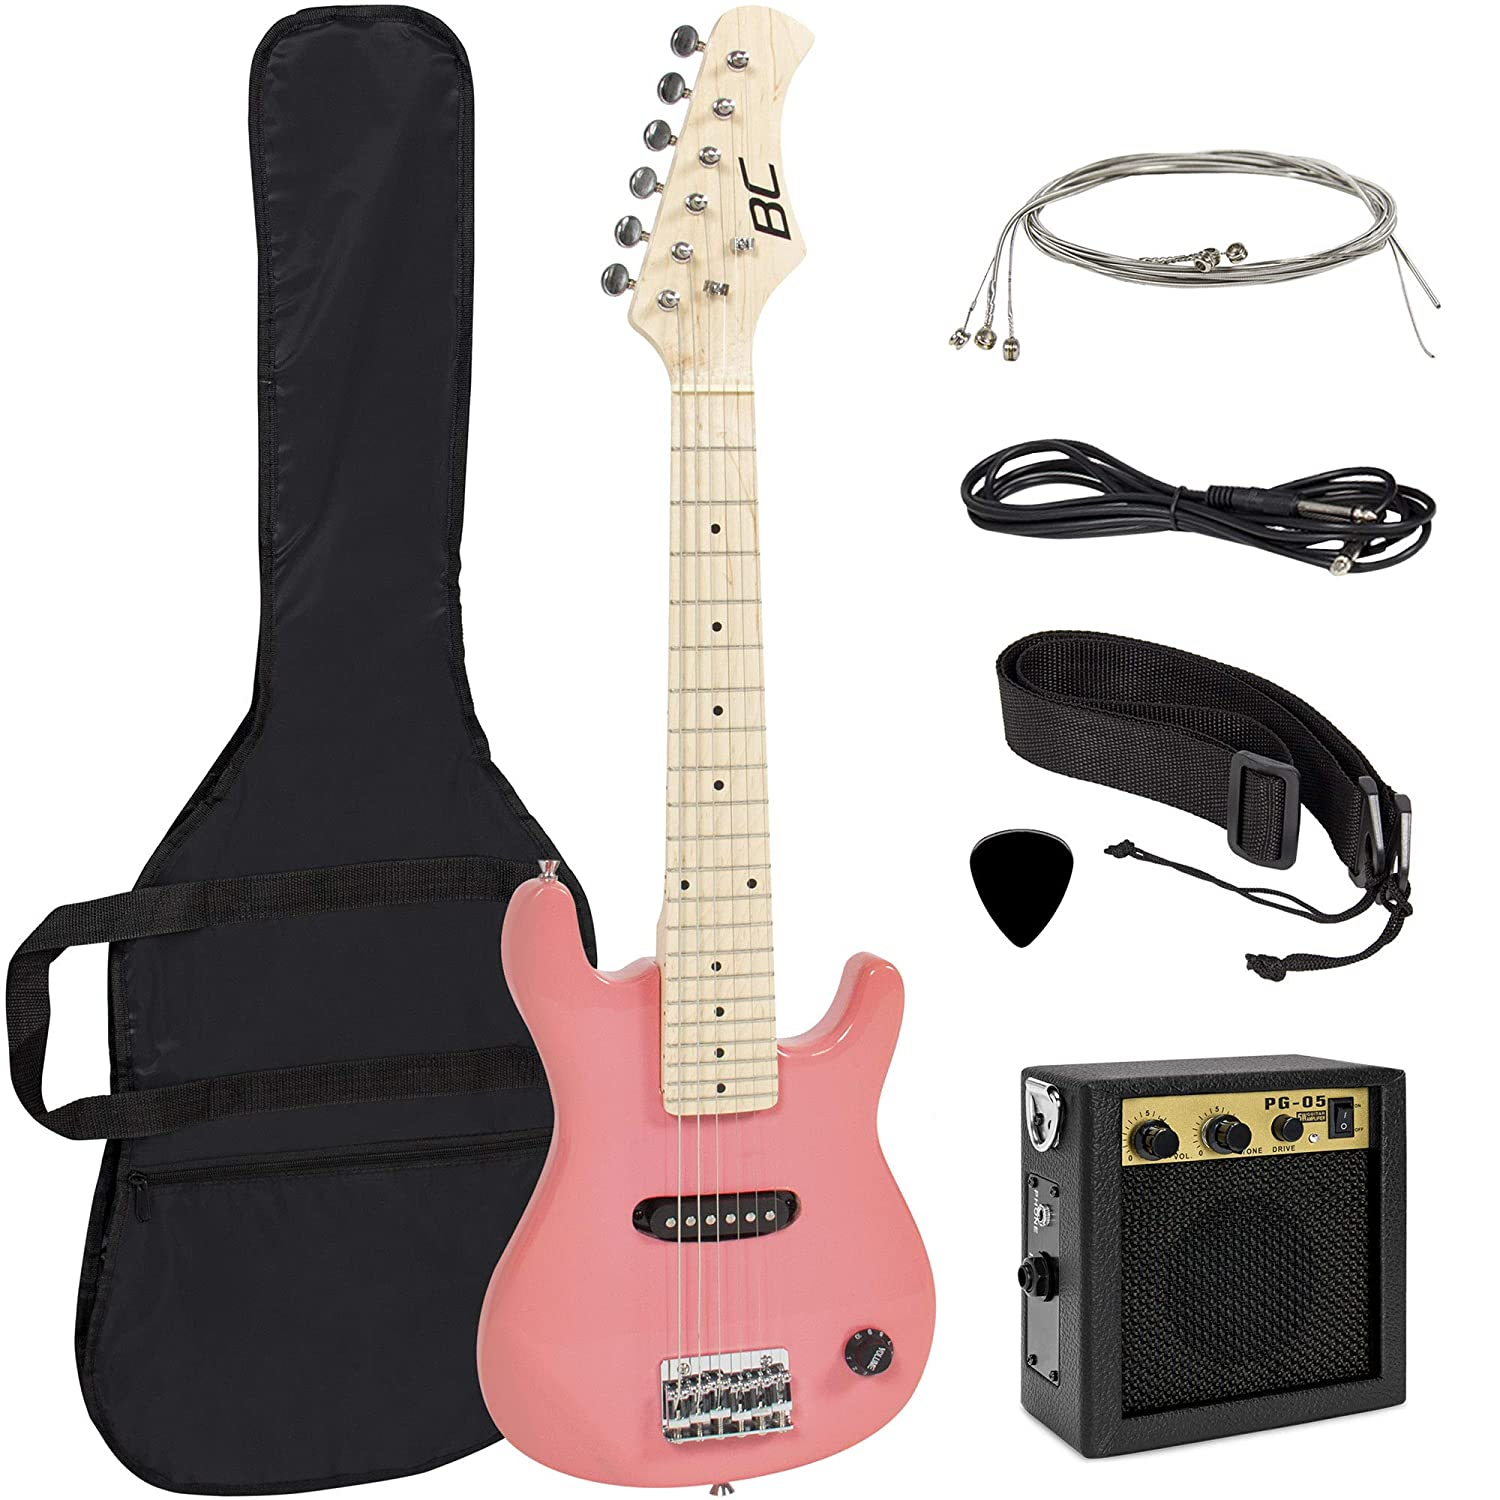 Best Choice Products 30in Kids 6-String Electric Guitar Beginner Starter Kit w// 5W Amplifier Strap Picks Strings Case Pink